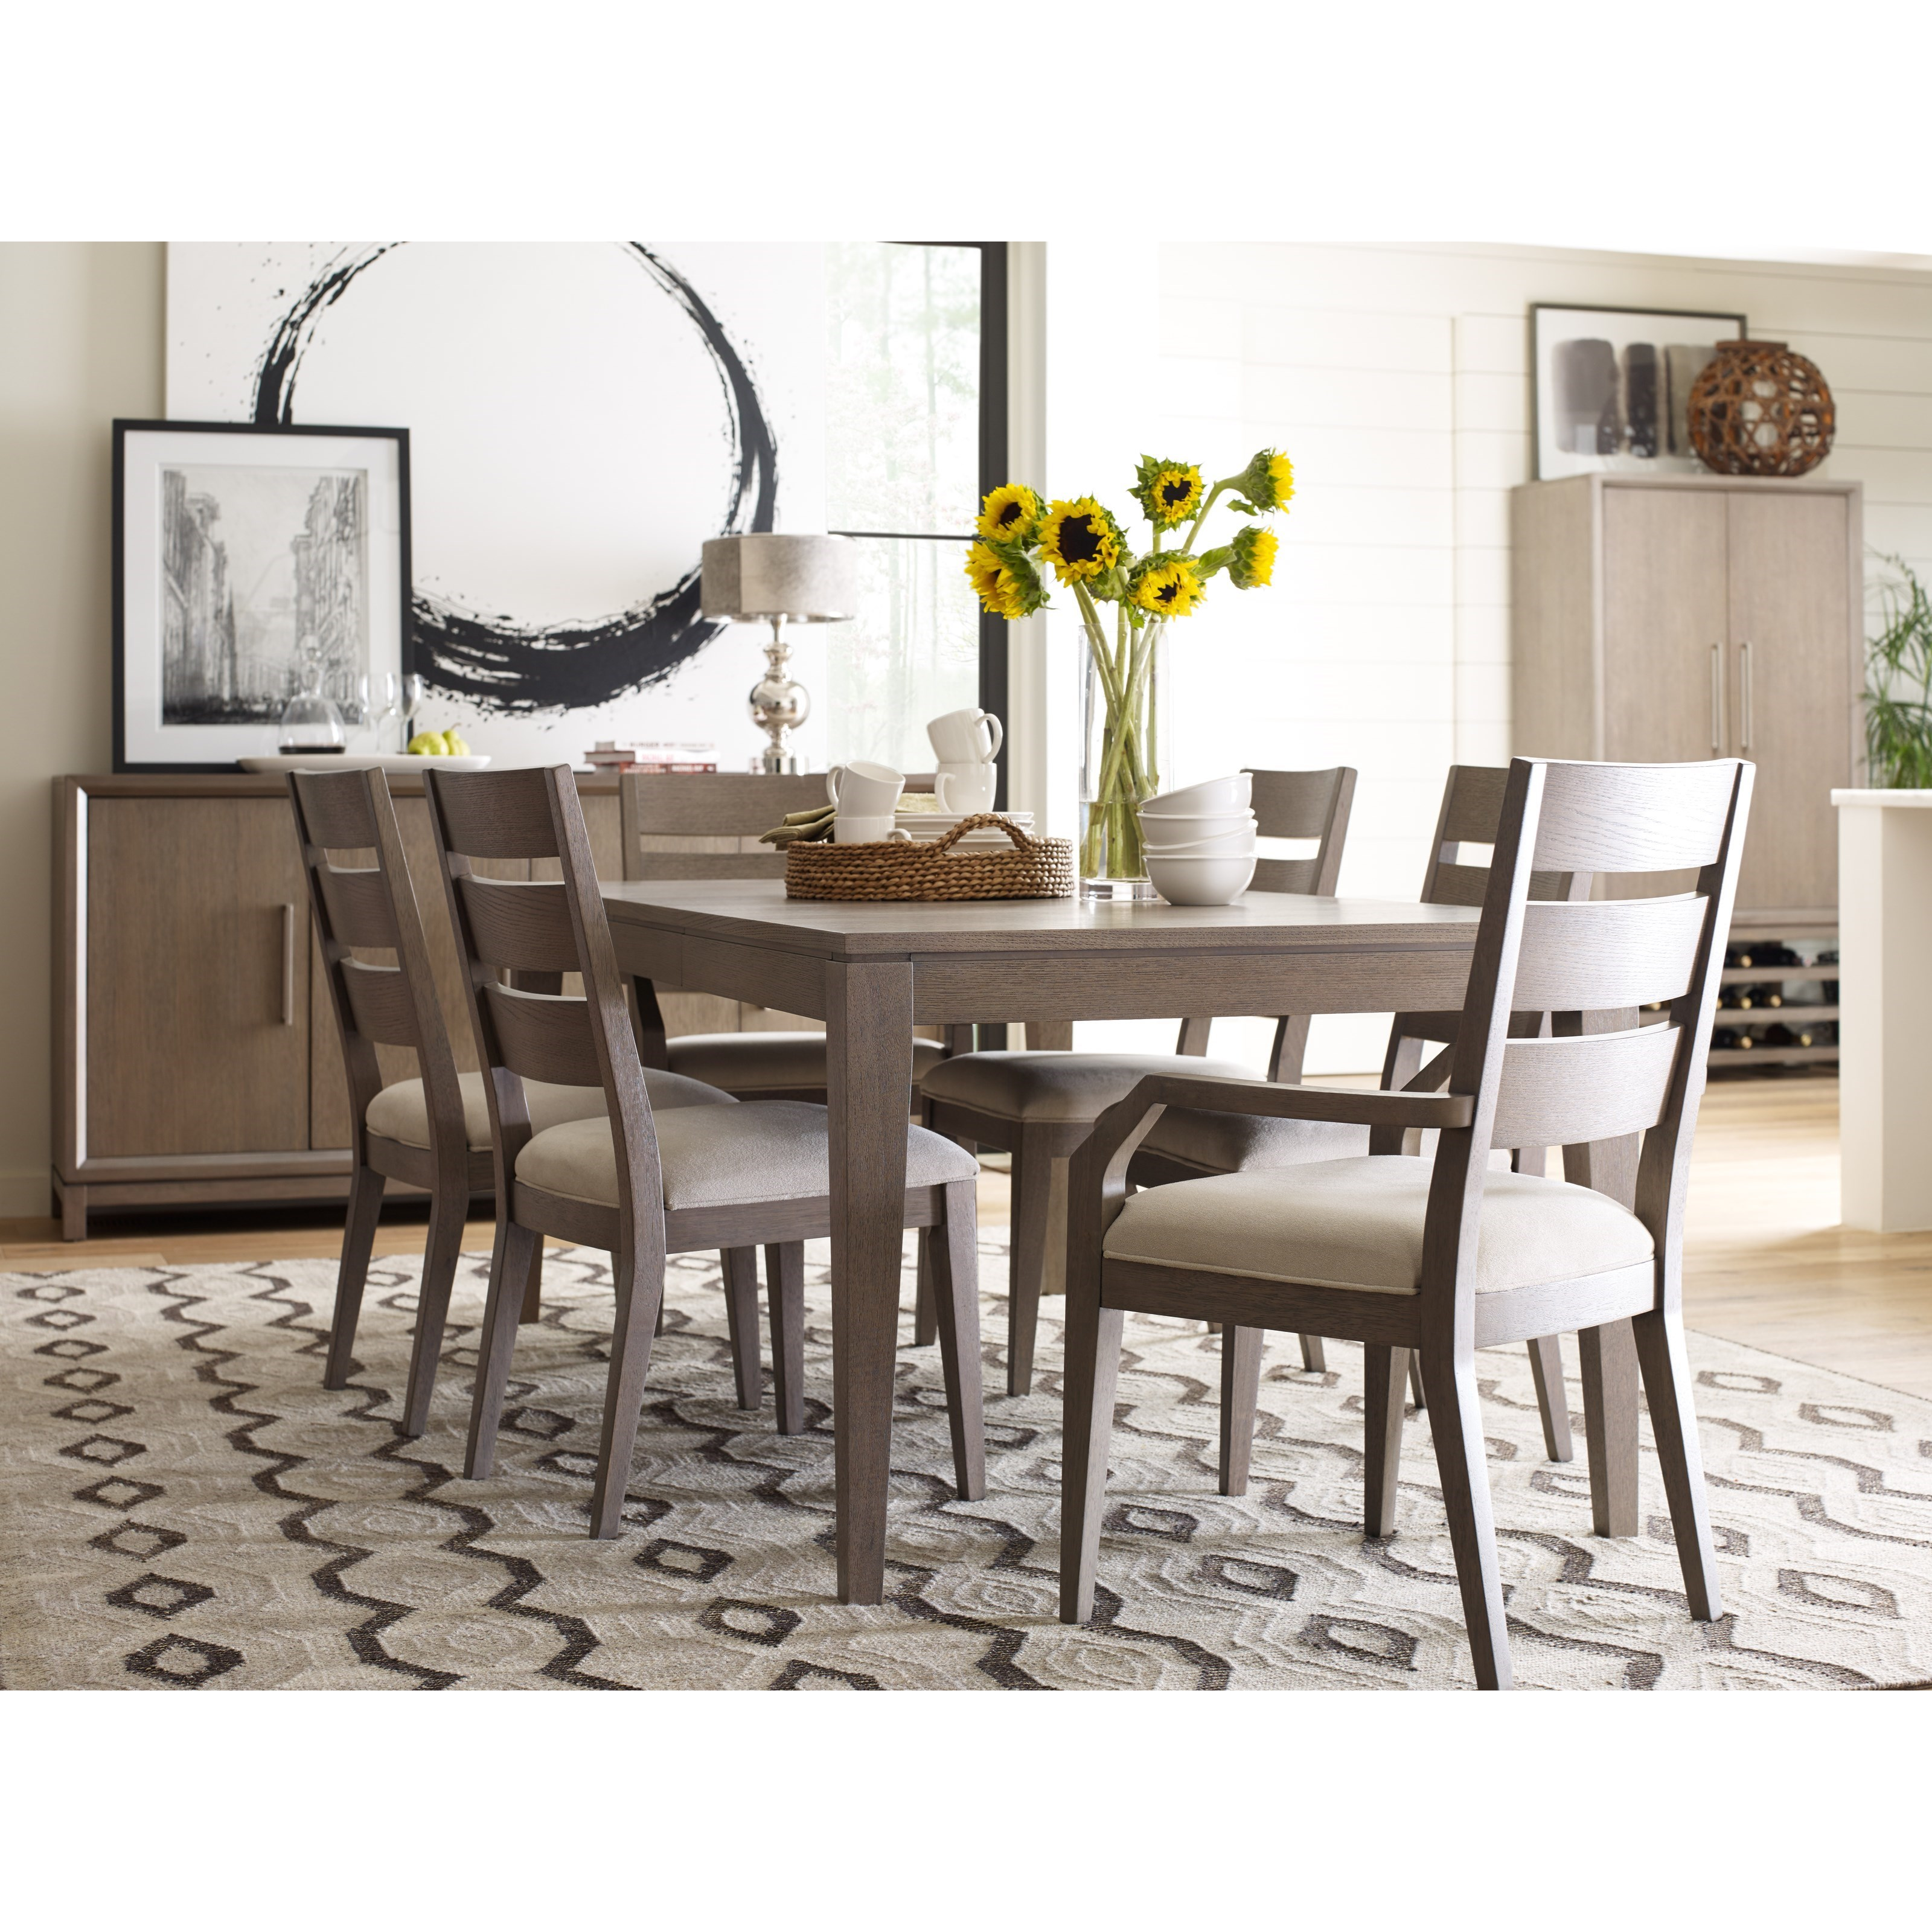 Highline Dining Room Group by Rachael Ray Home by Legacy Classic at Baer's Furniture